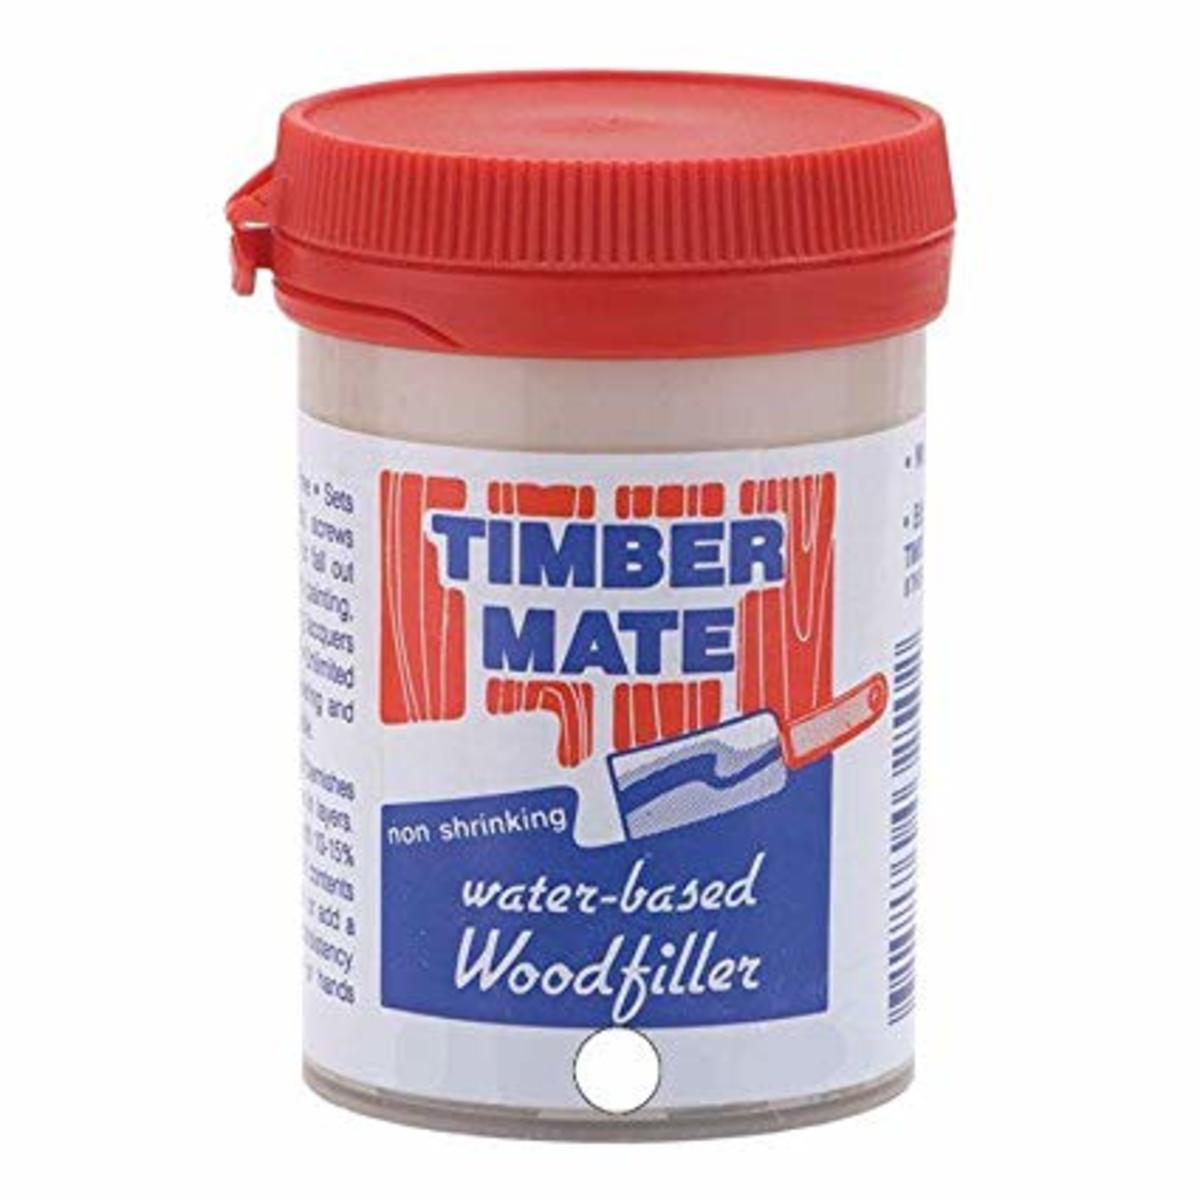 An 8 ounce container of Timbermate wood filler